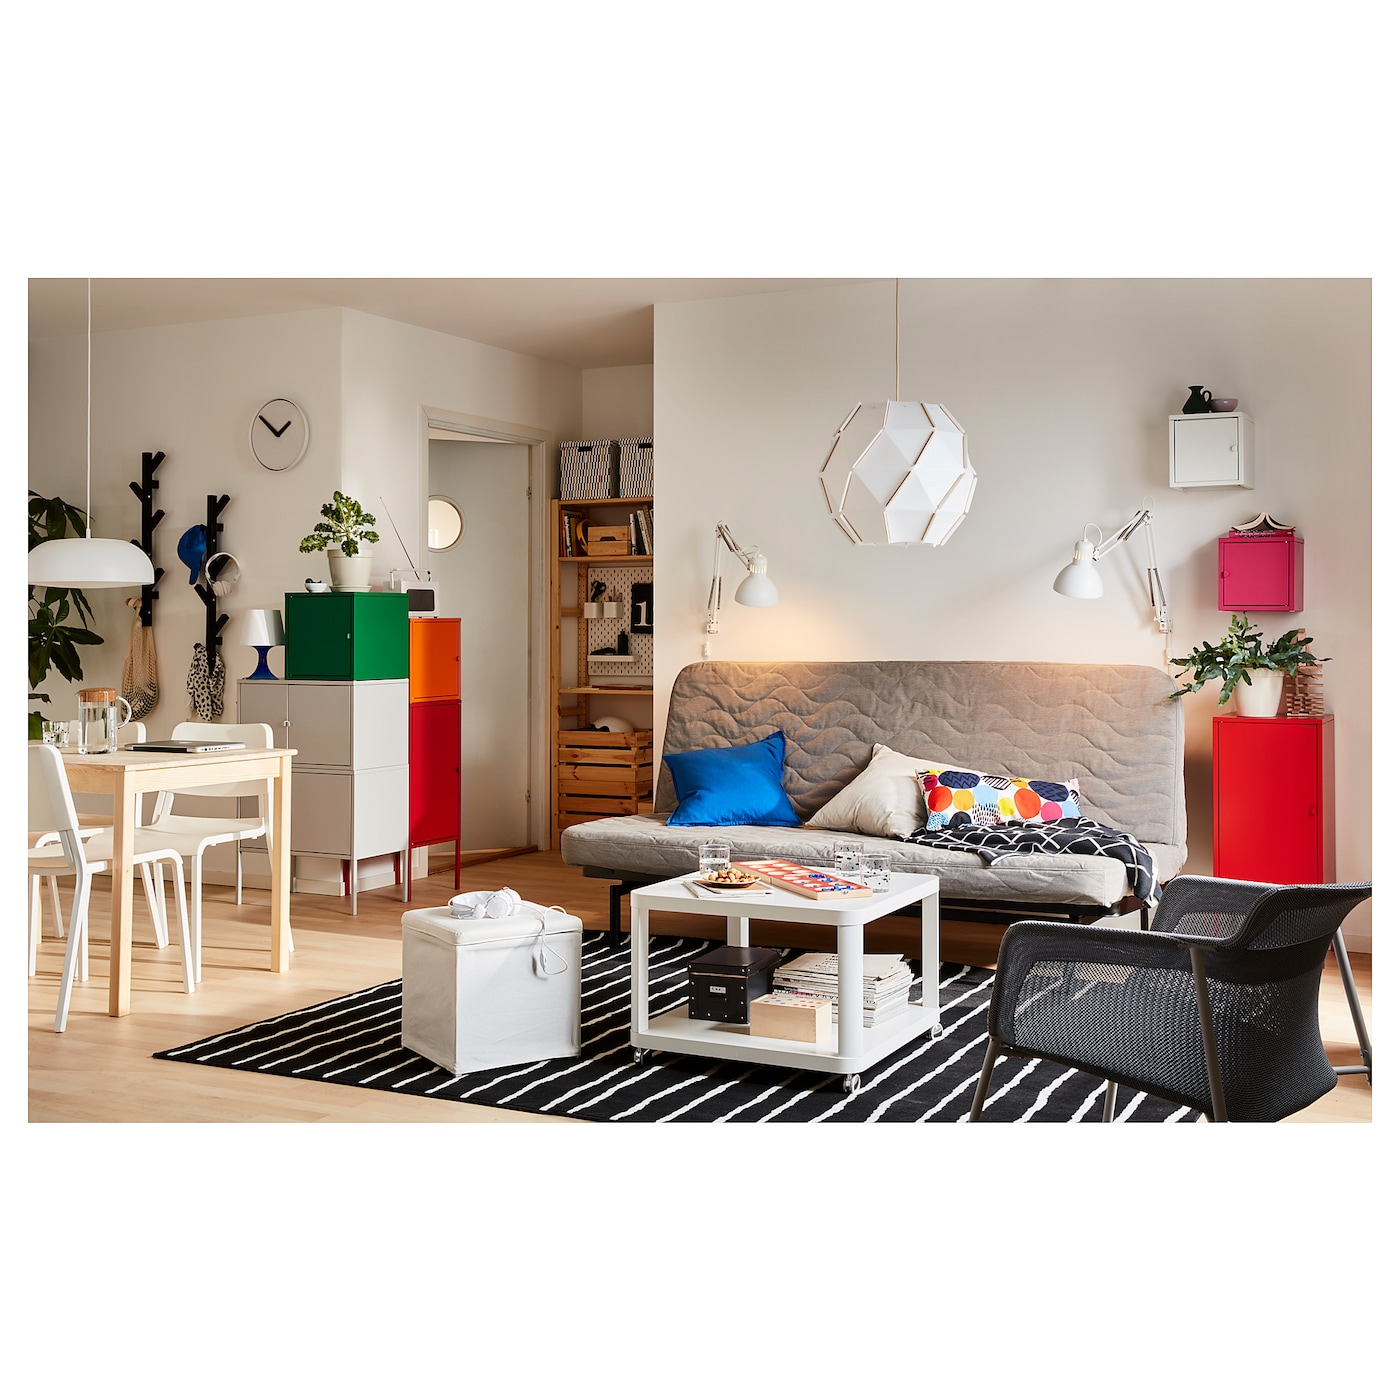 lixhult combinaison de rangement gris vert fonc rouge orange 95x127 cm ikea. Black Bedroom Furniture Sets. Home Design Ideas